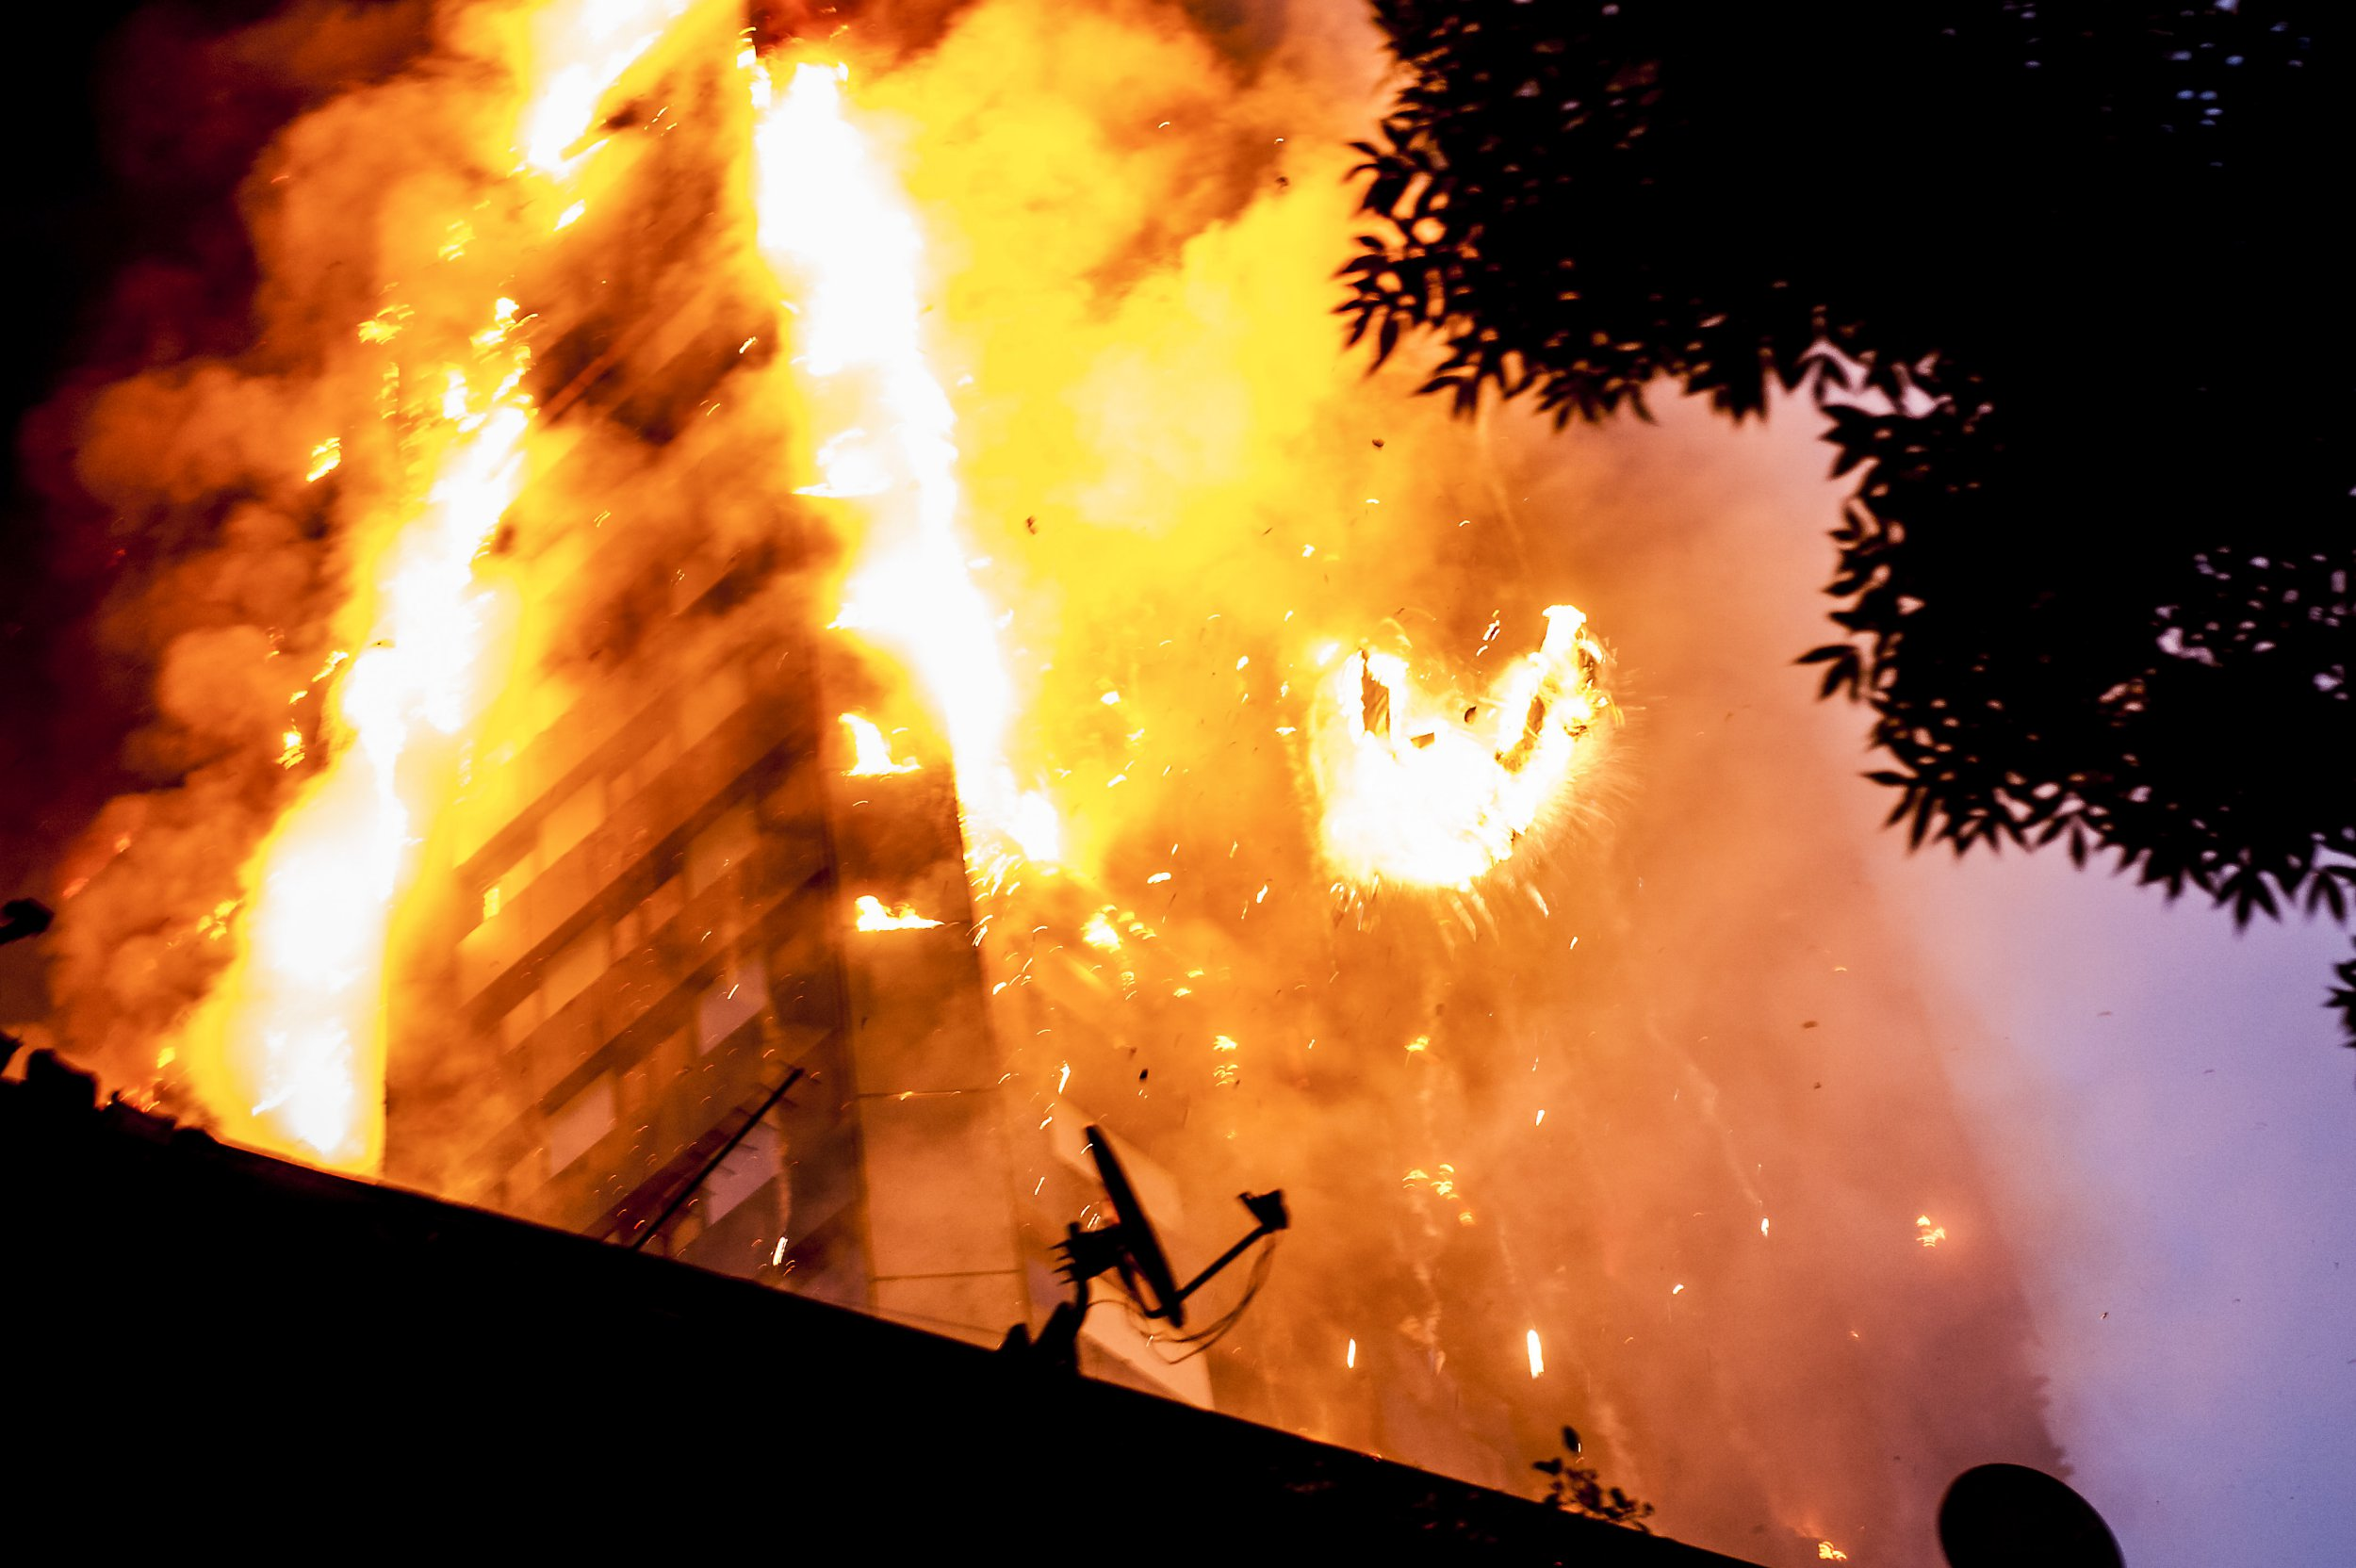 Falling burning debris at the scene of the huge fire at Grenfell tower block in White City, London. The blaze engulfed the 27-storey building with 200 firefighters attending the scene. There were reports of people trapped in the building (Picture: Guilhem Baker/LNP)